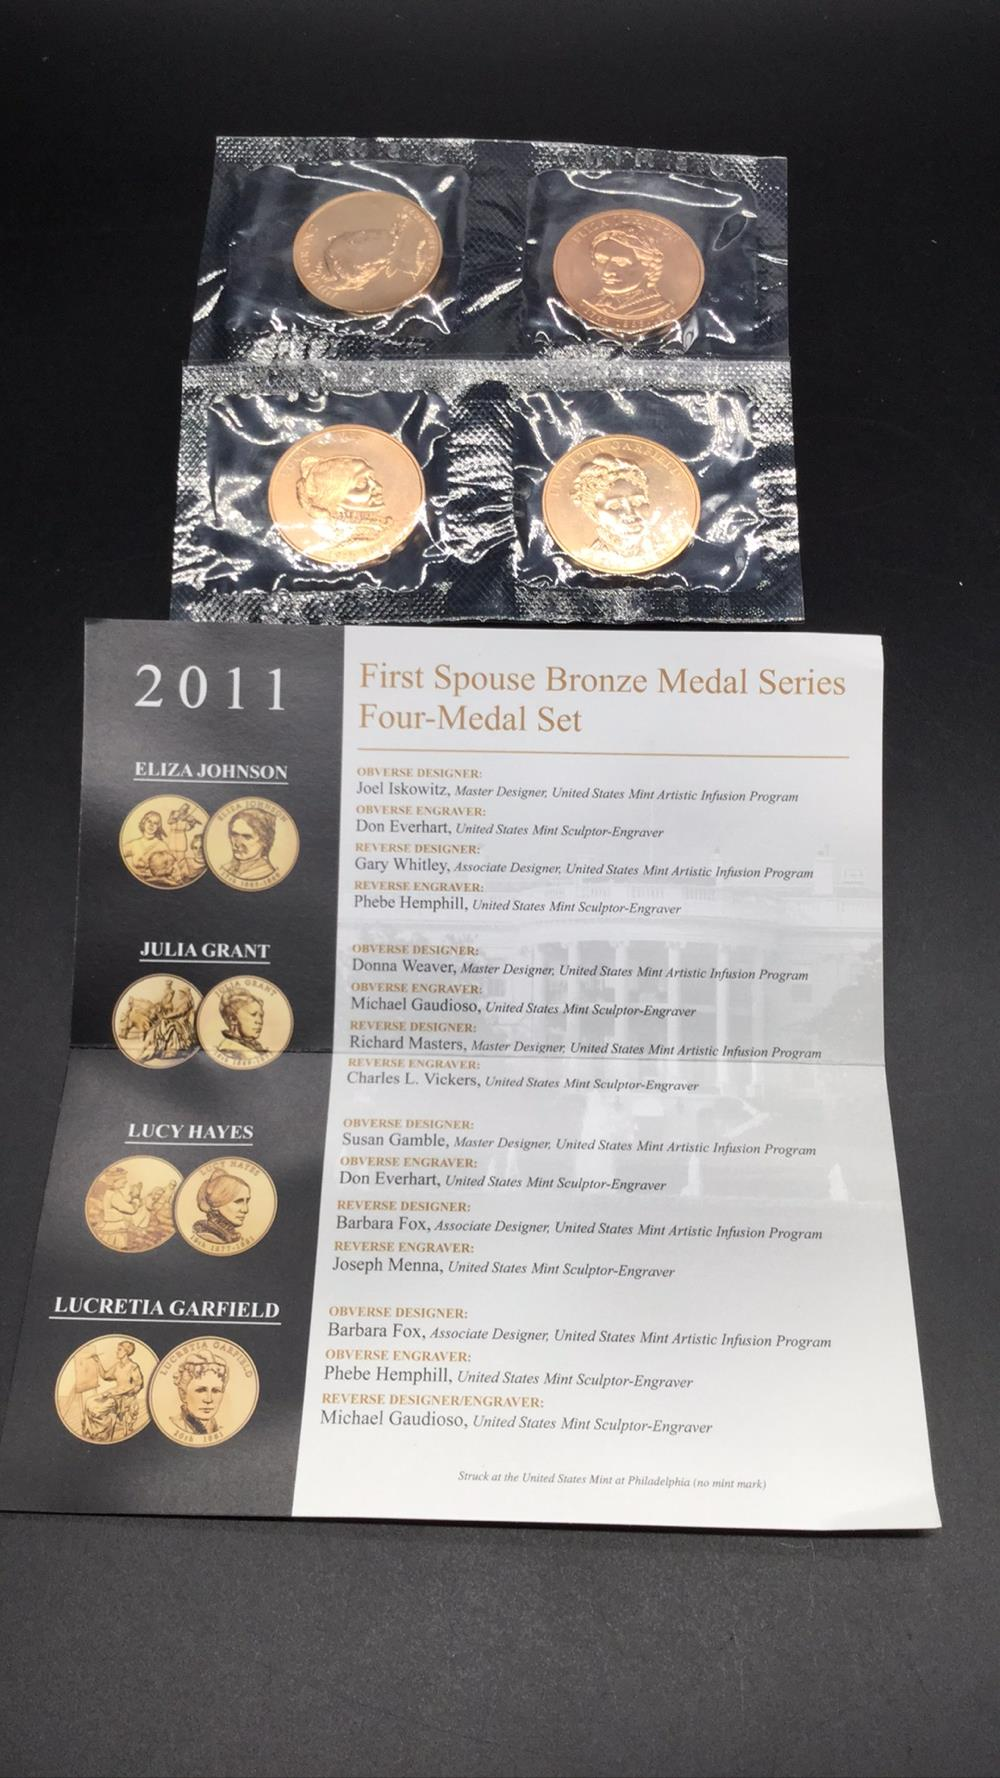 2011 first spouse bronze medal series